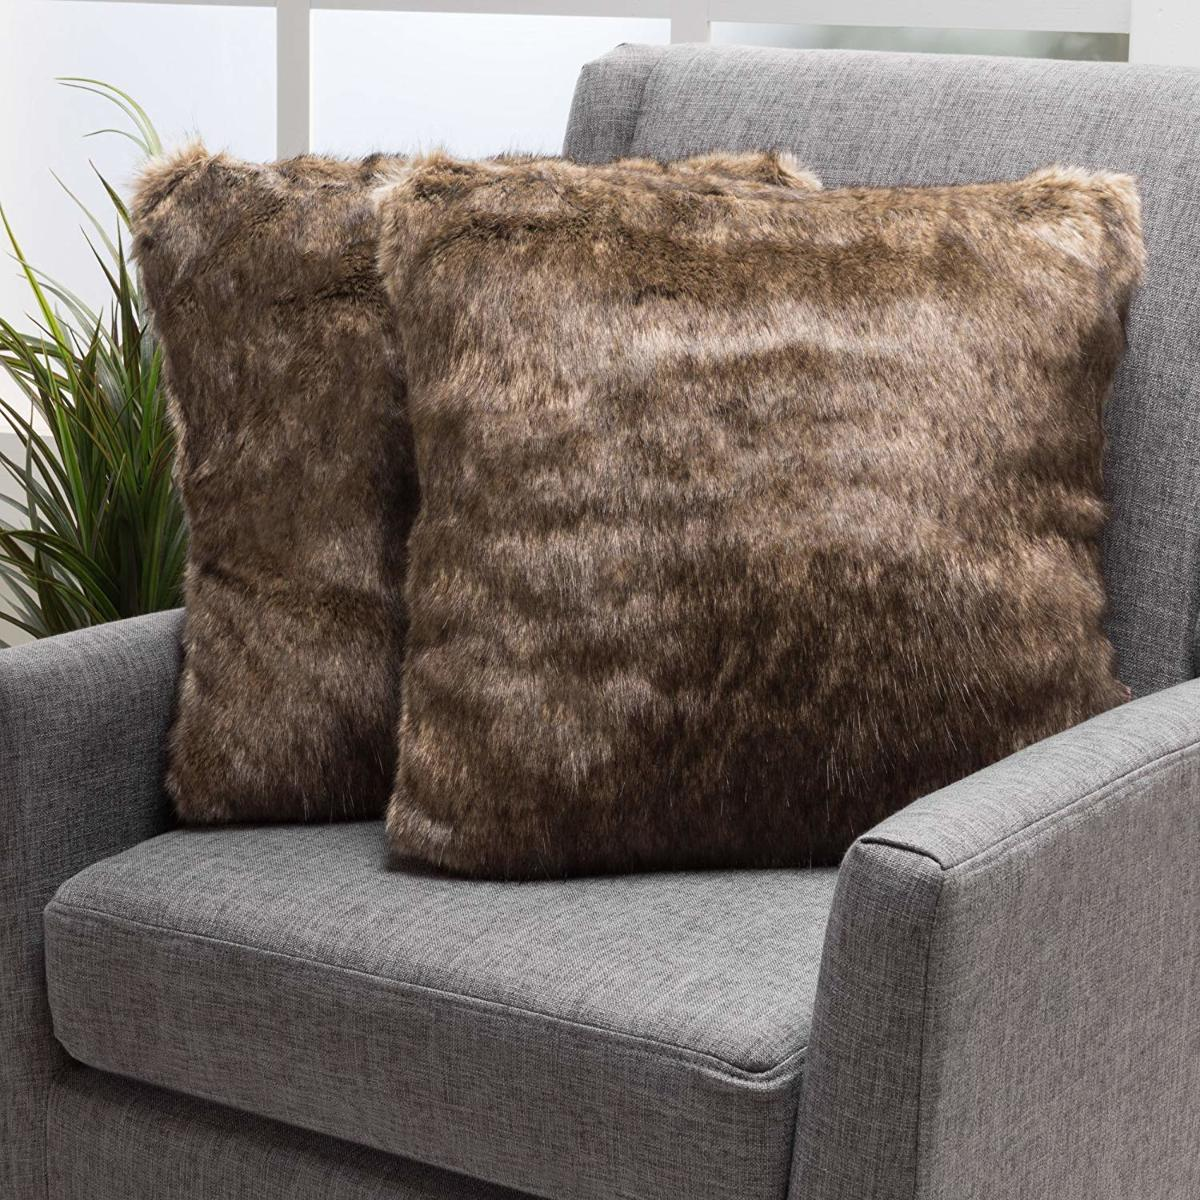 Christopher Knight Home Decor Faux Fur Fabric 18x18x3 Throw